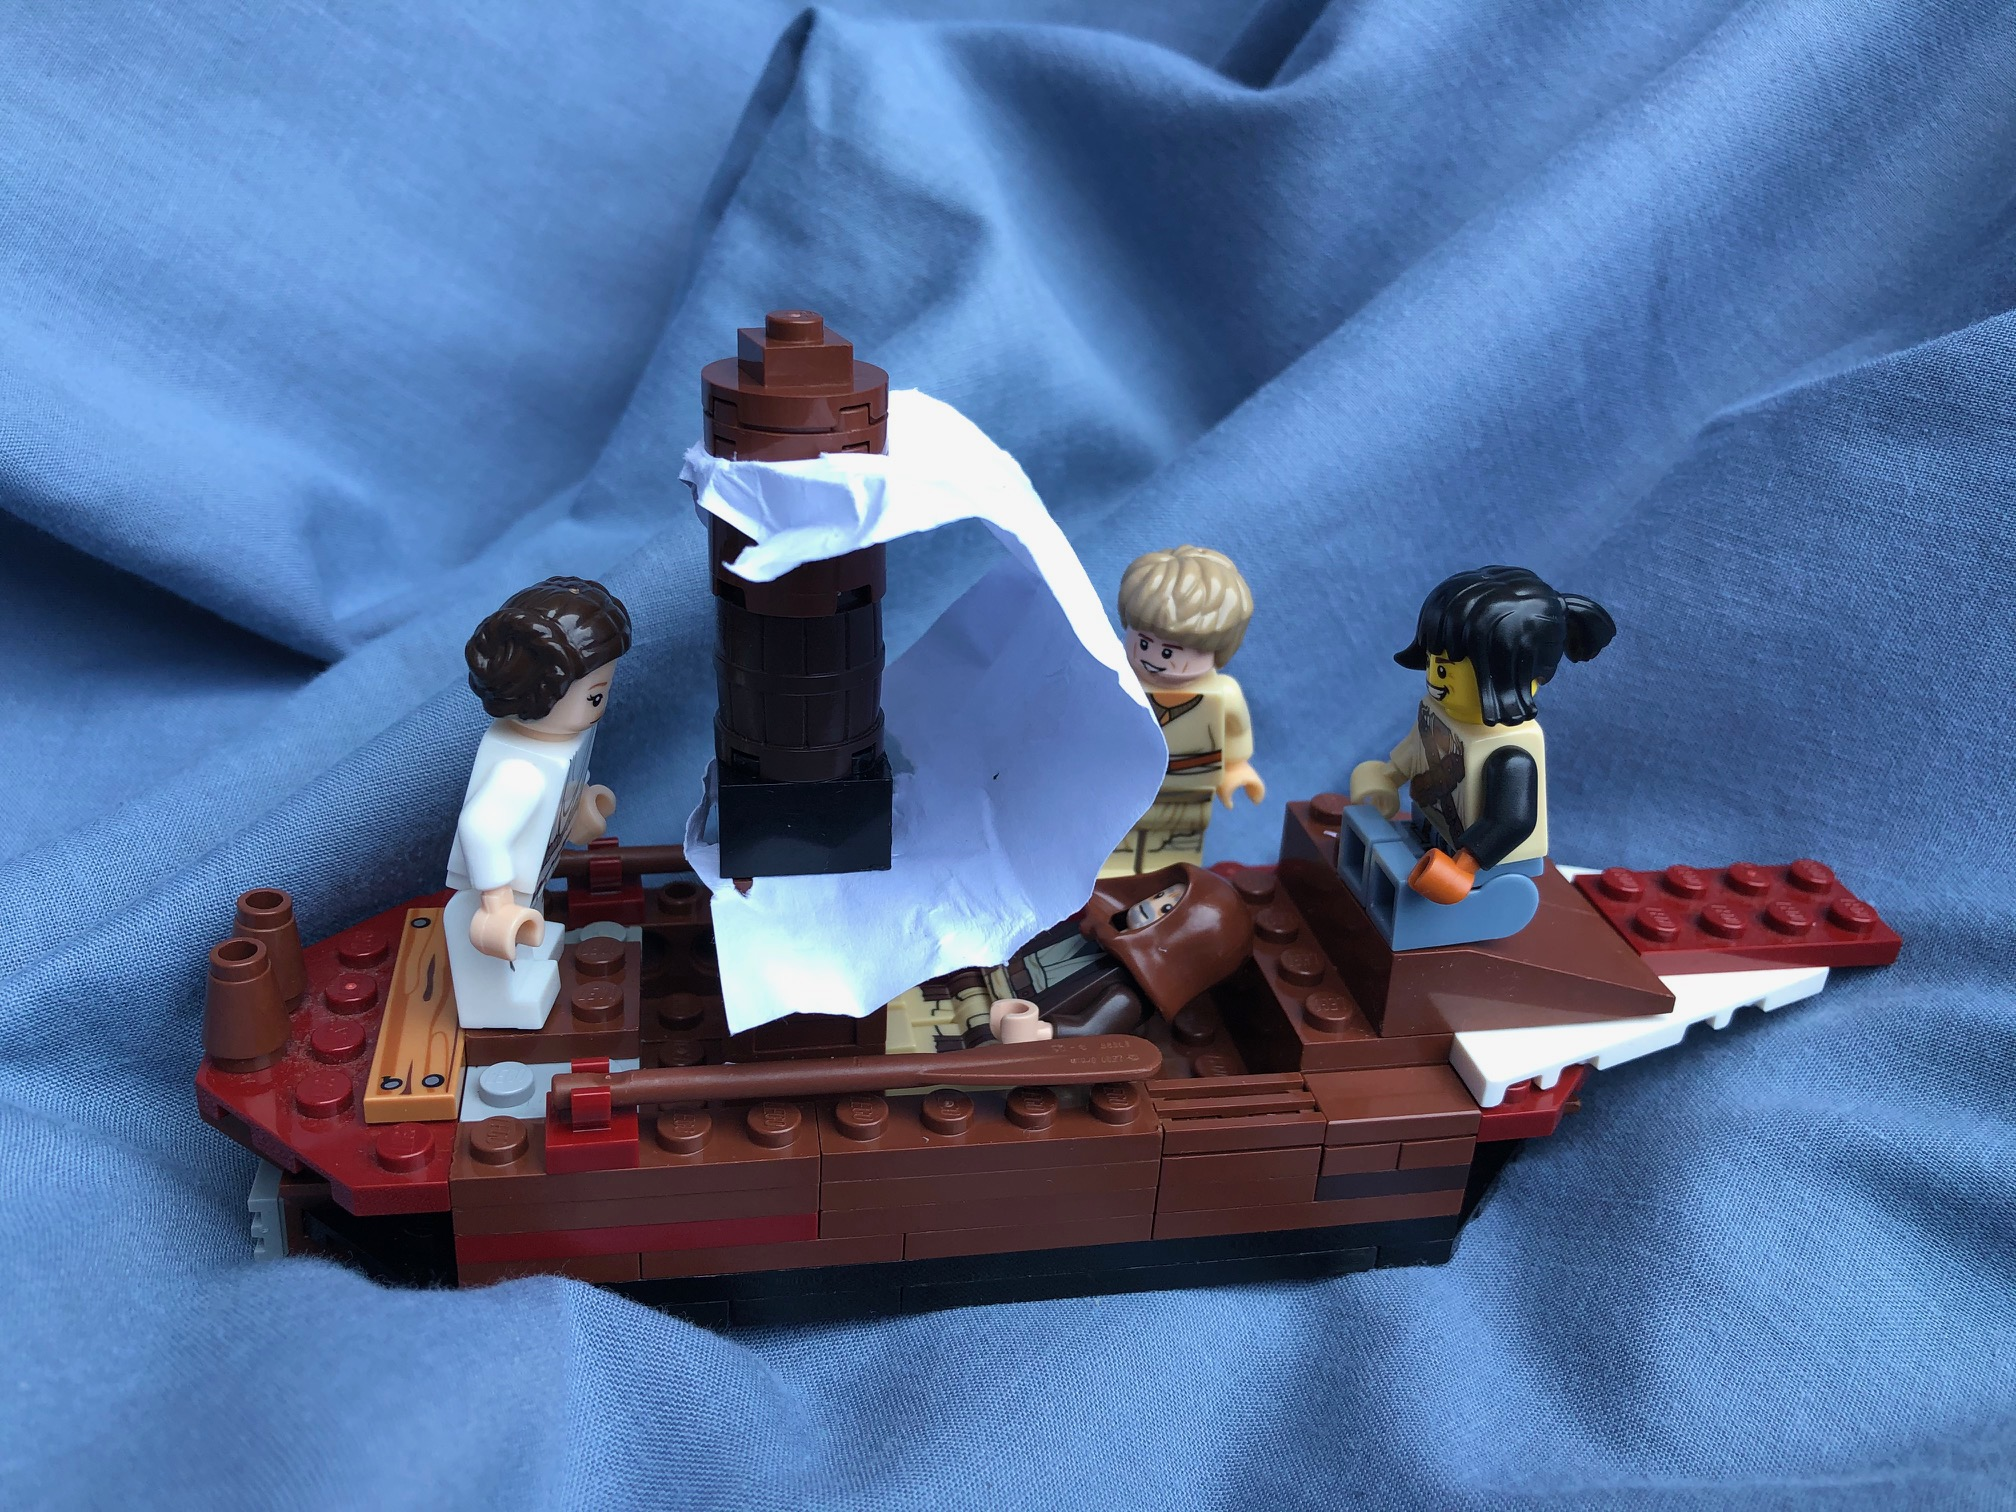 Jesus asleep in a lego boat before the storm